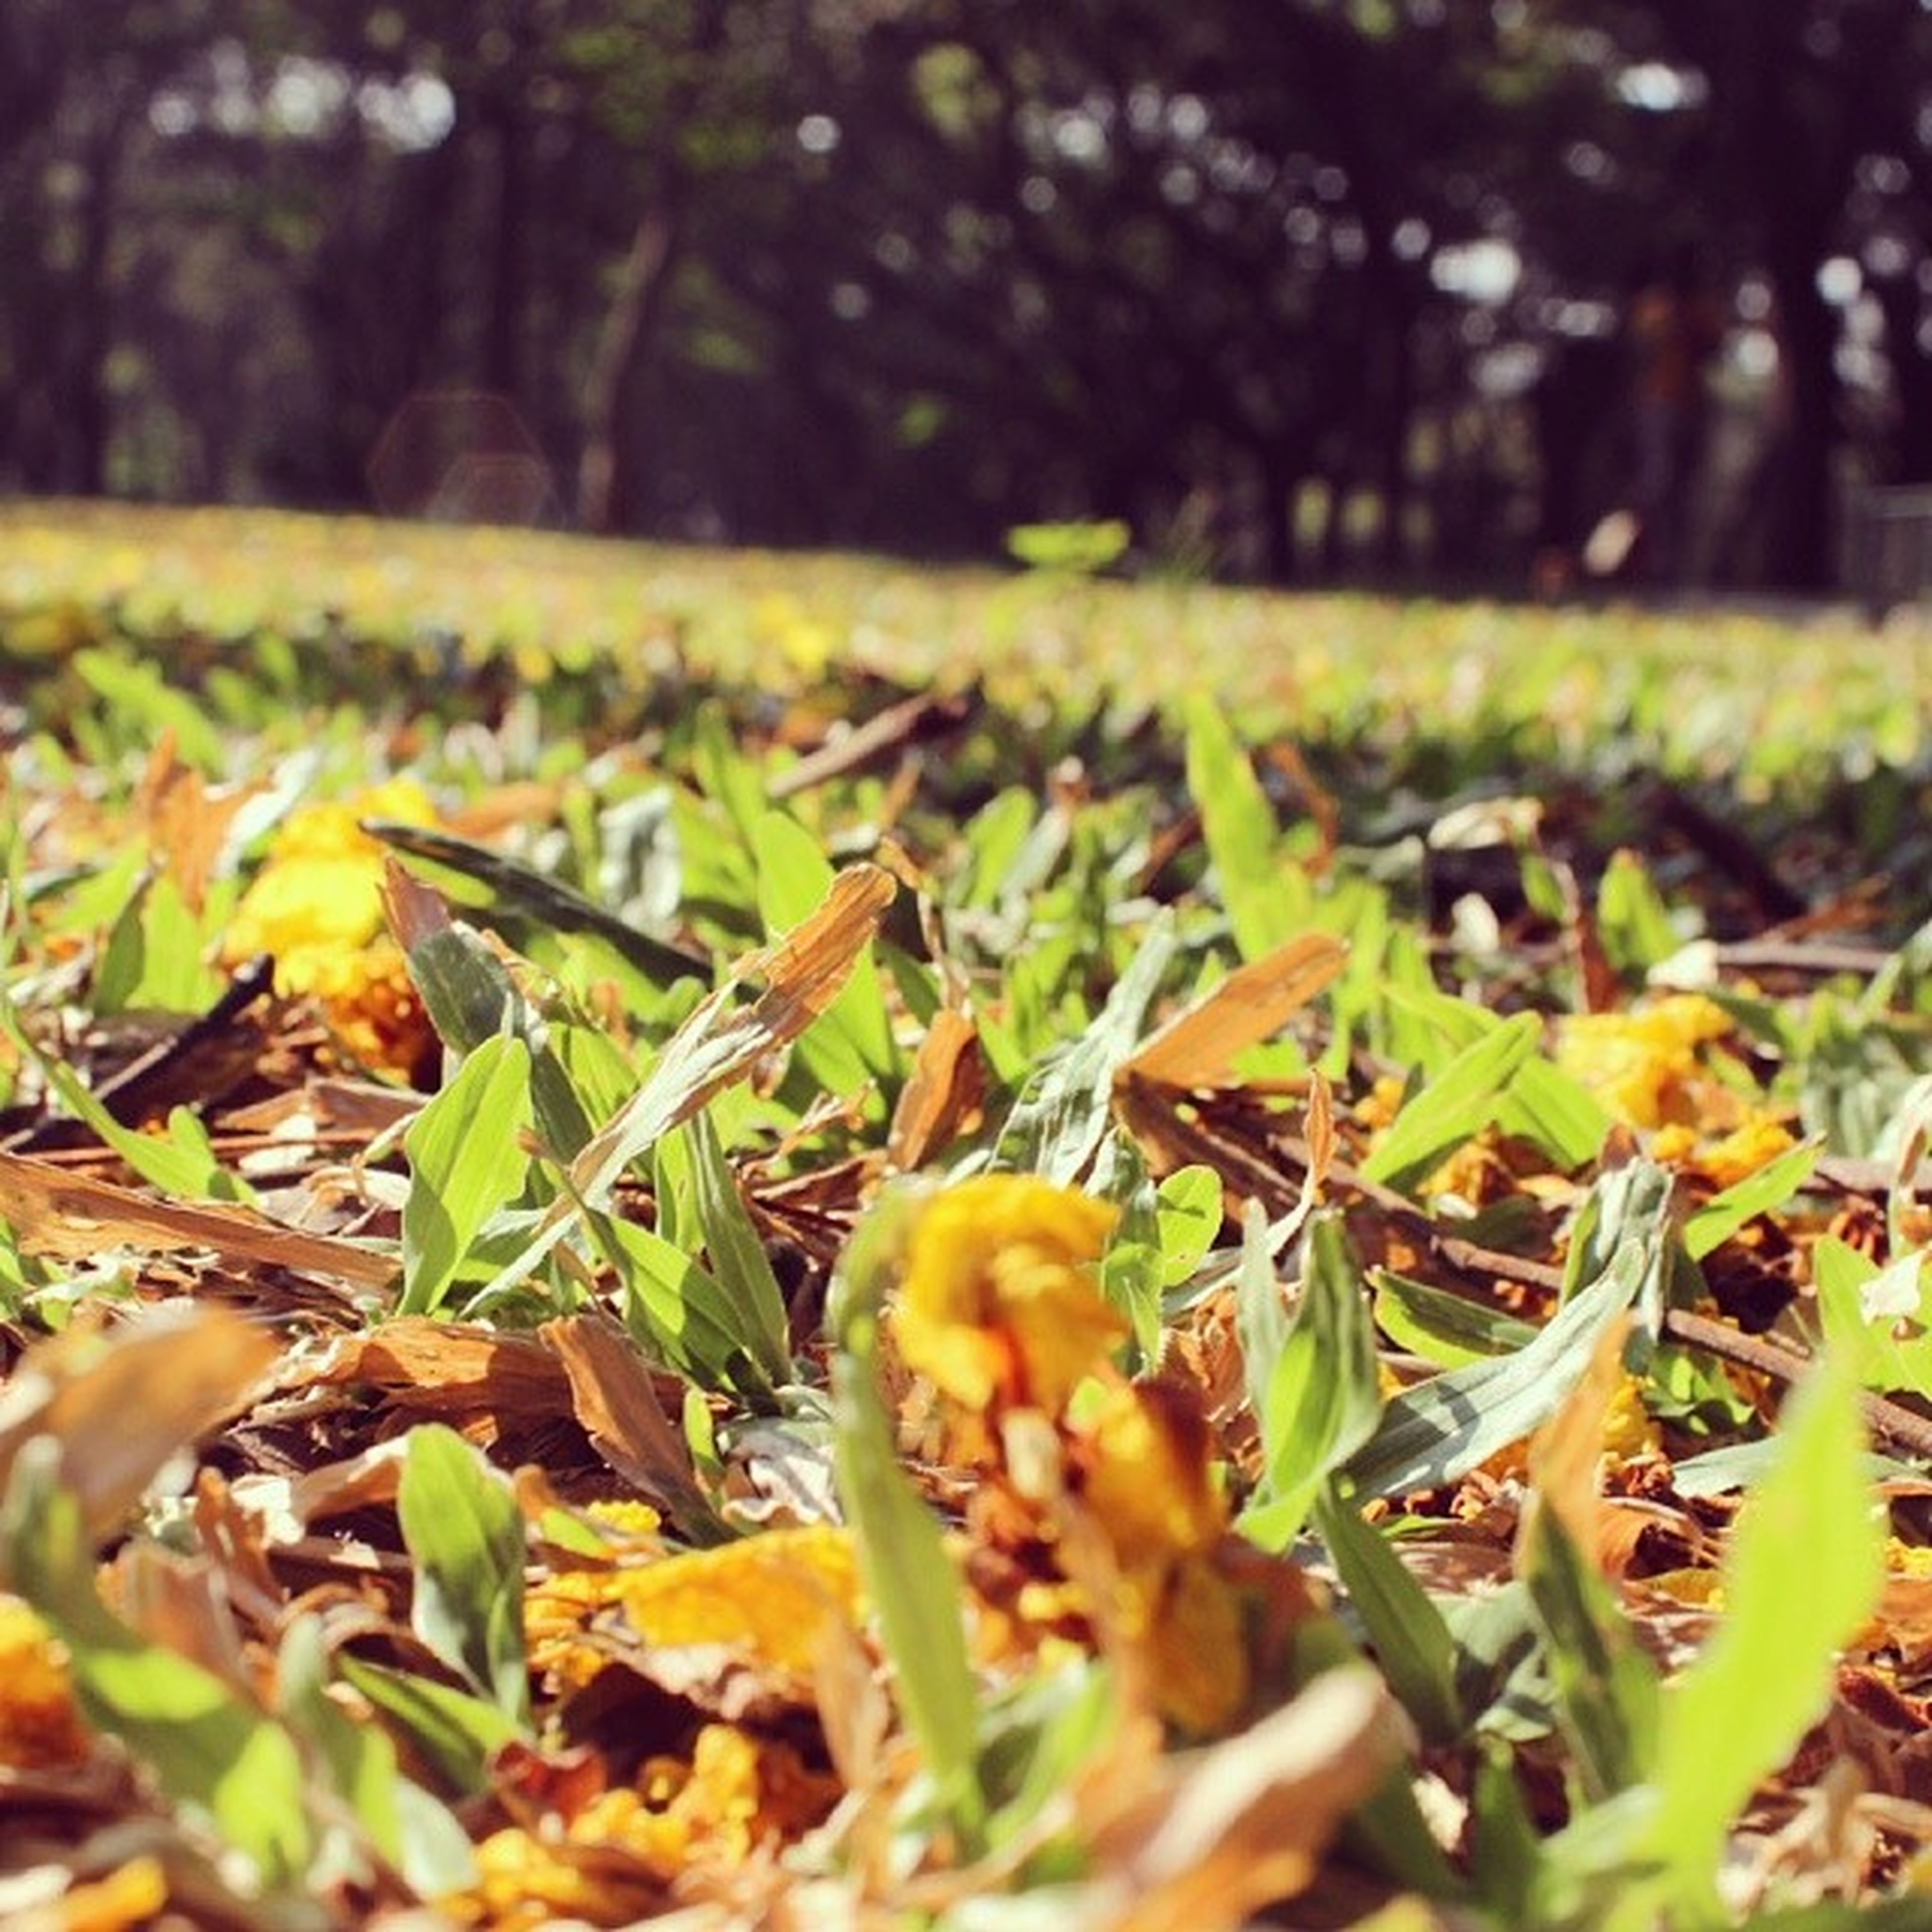 leaf, growth, selective focus, field, focus on foreground, nature, autumn, grass, green color, close-up, beauty in nature, plant, surface level, fragility, season, change, leaves, tranquility, day, yellow